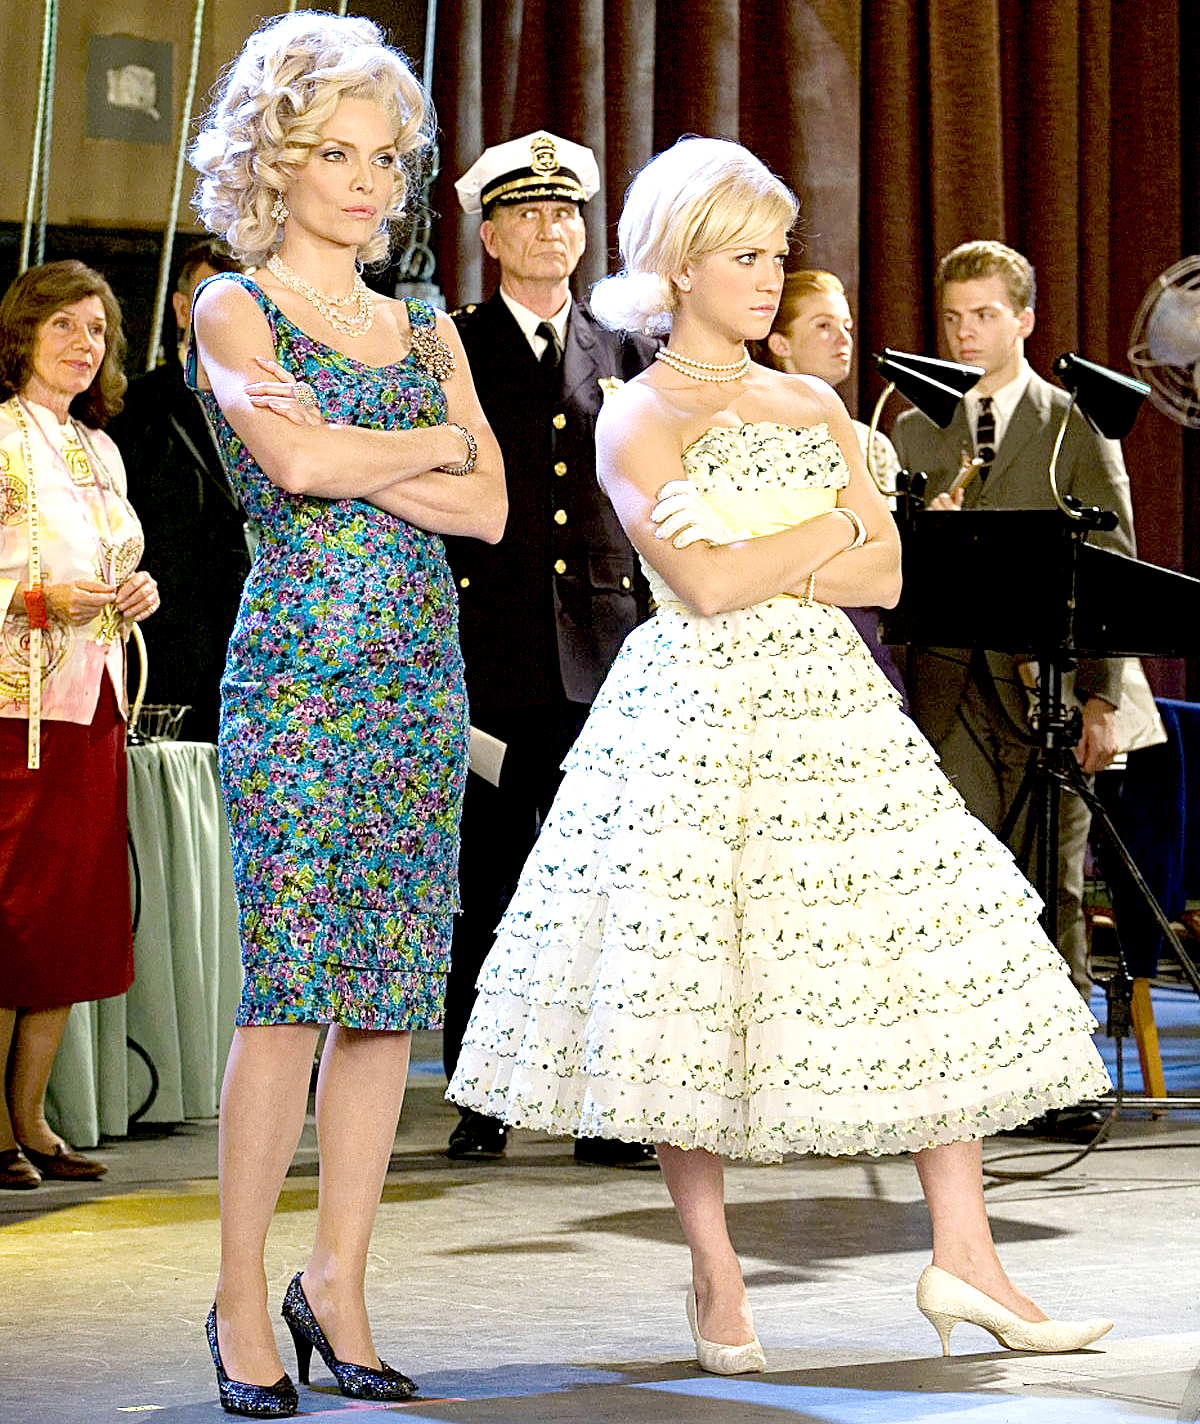 Michelle Pfeiffer and Brittany Snow in 2007's Hairspray.